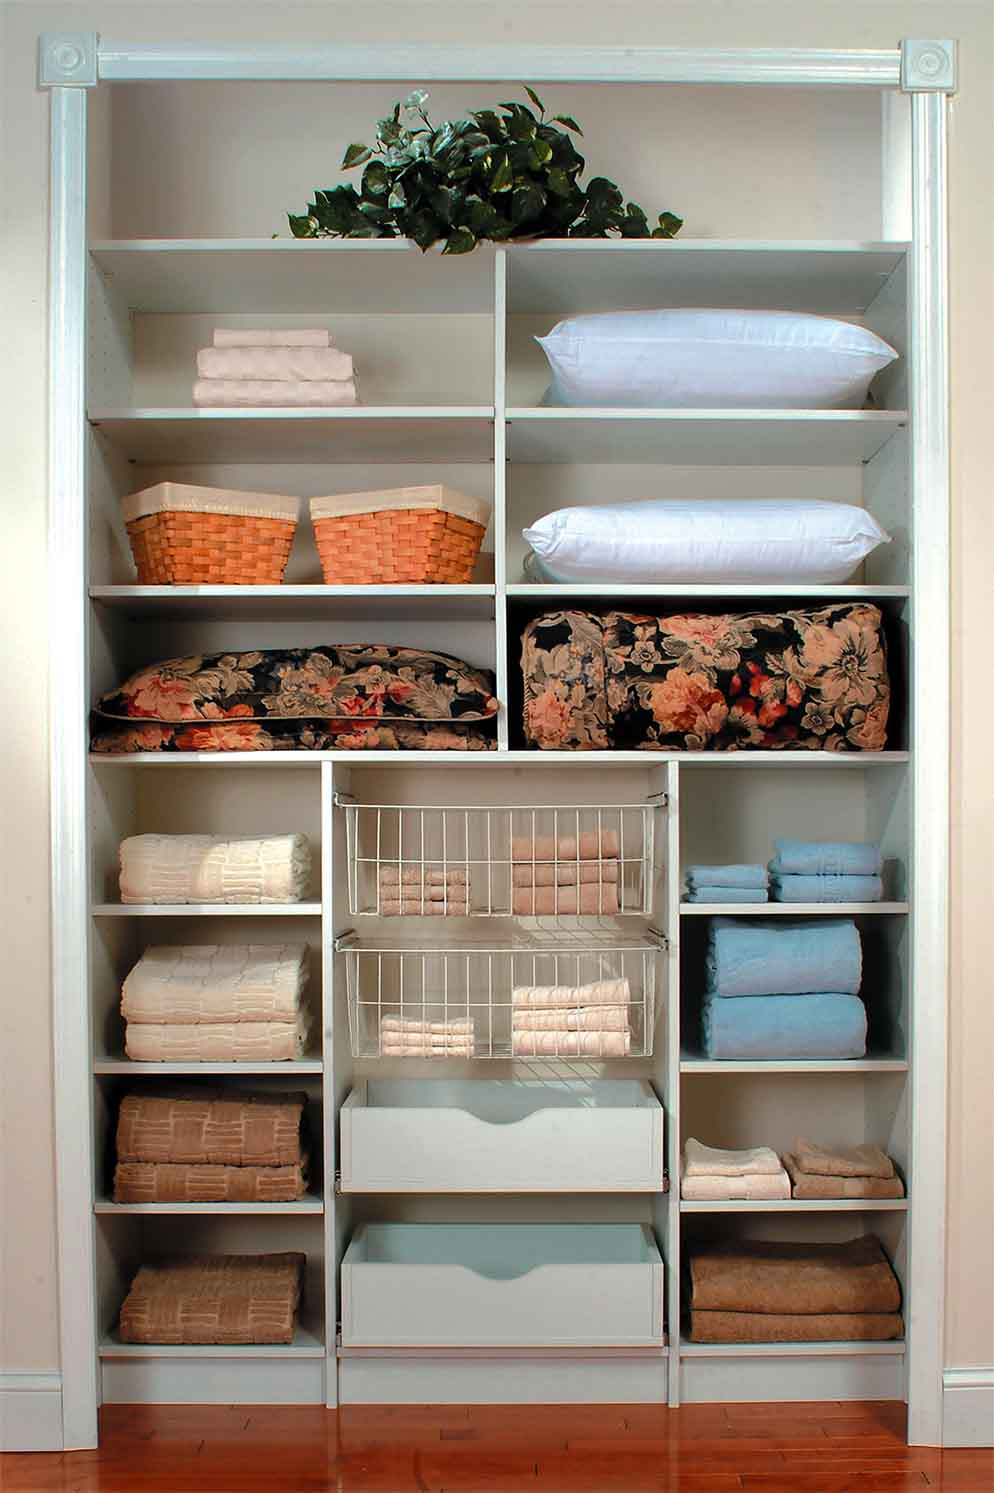 Linen closet neat and organized